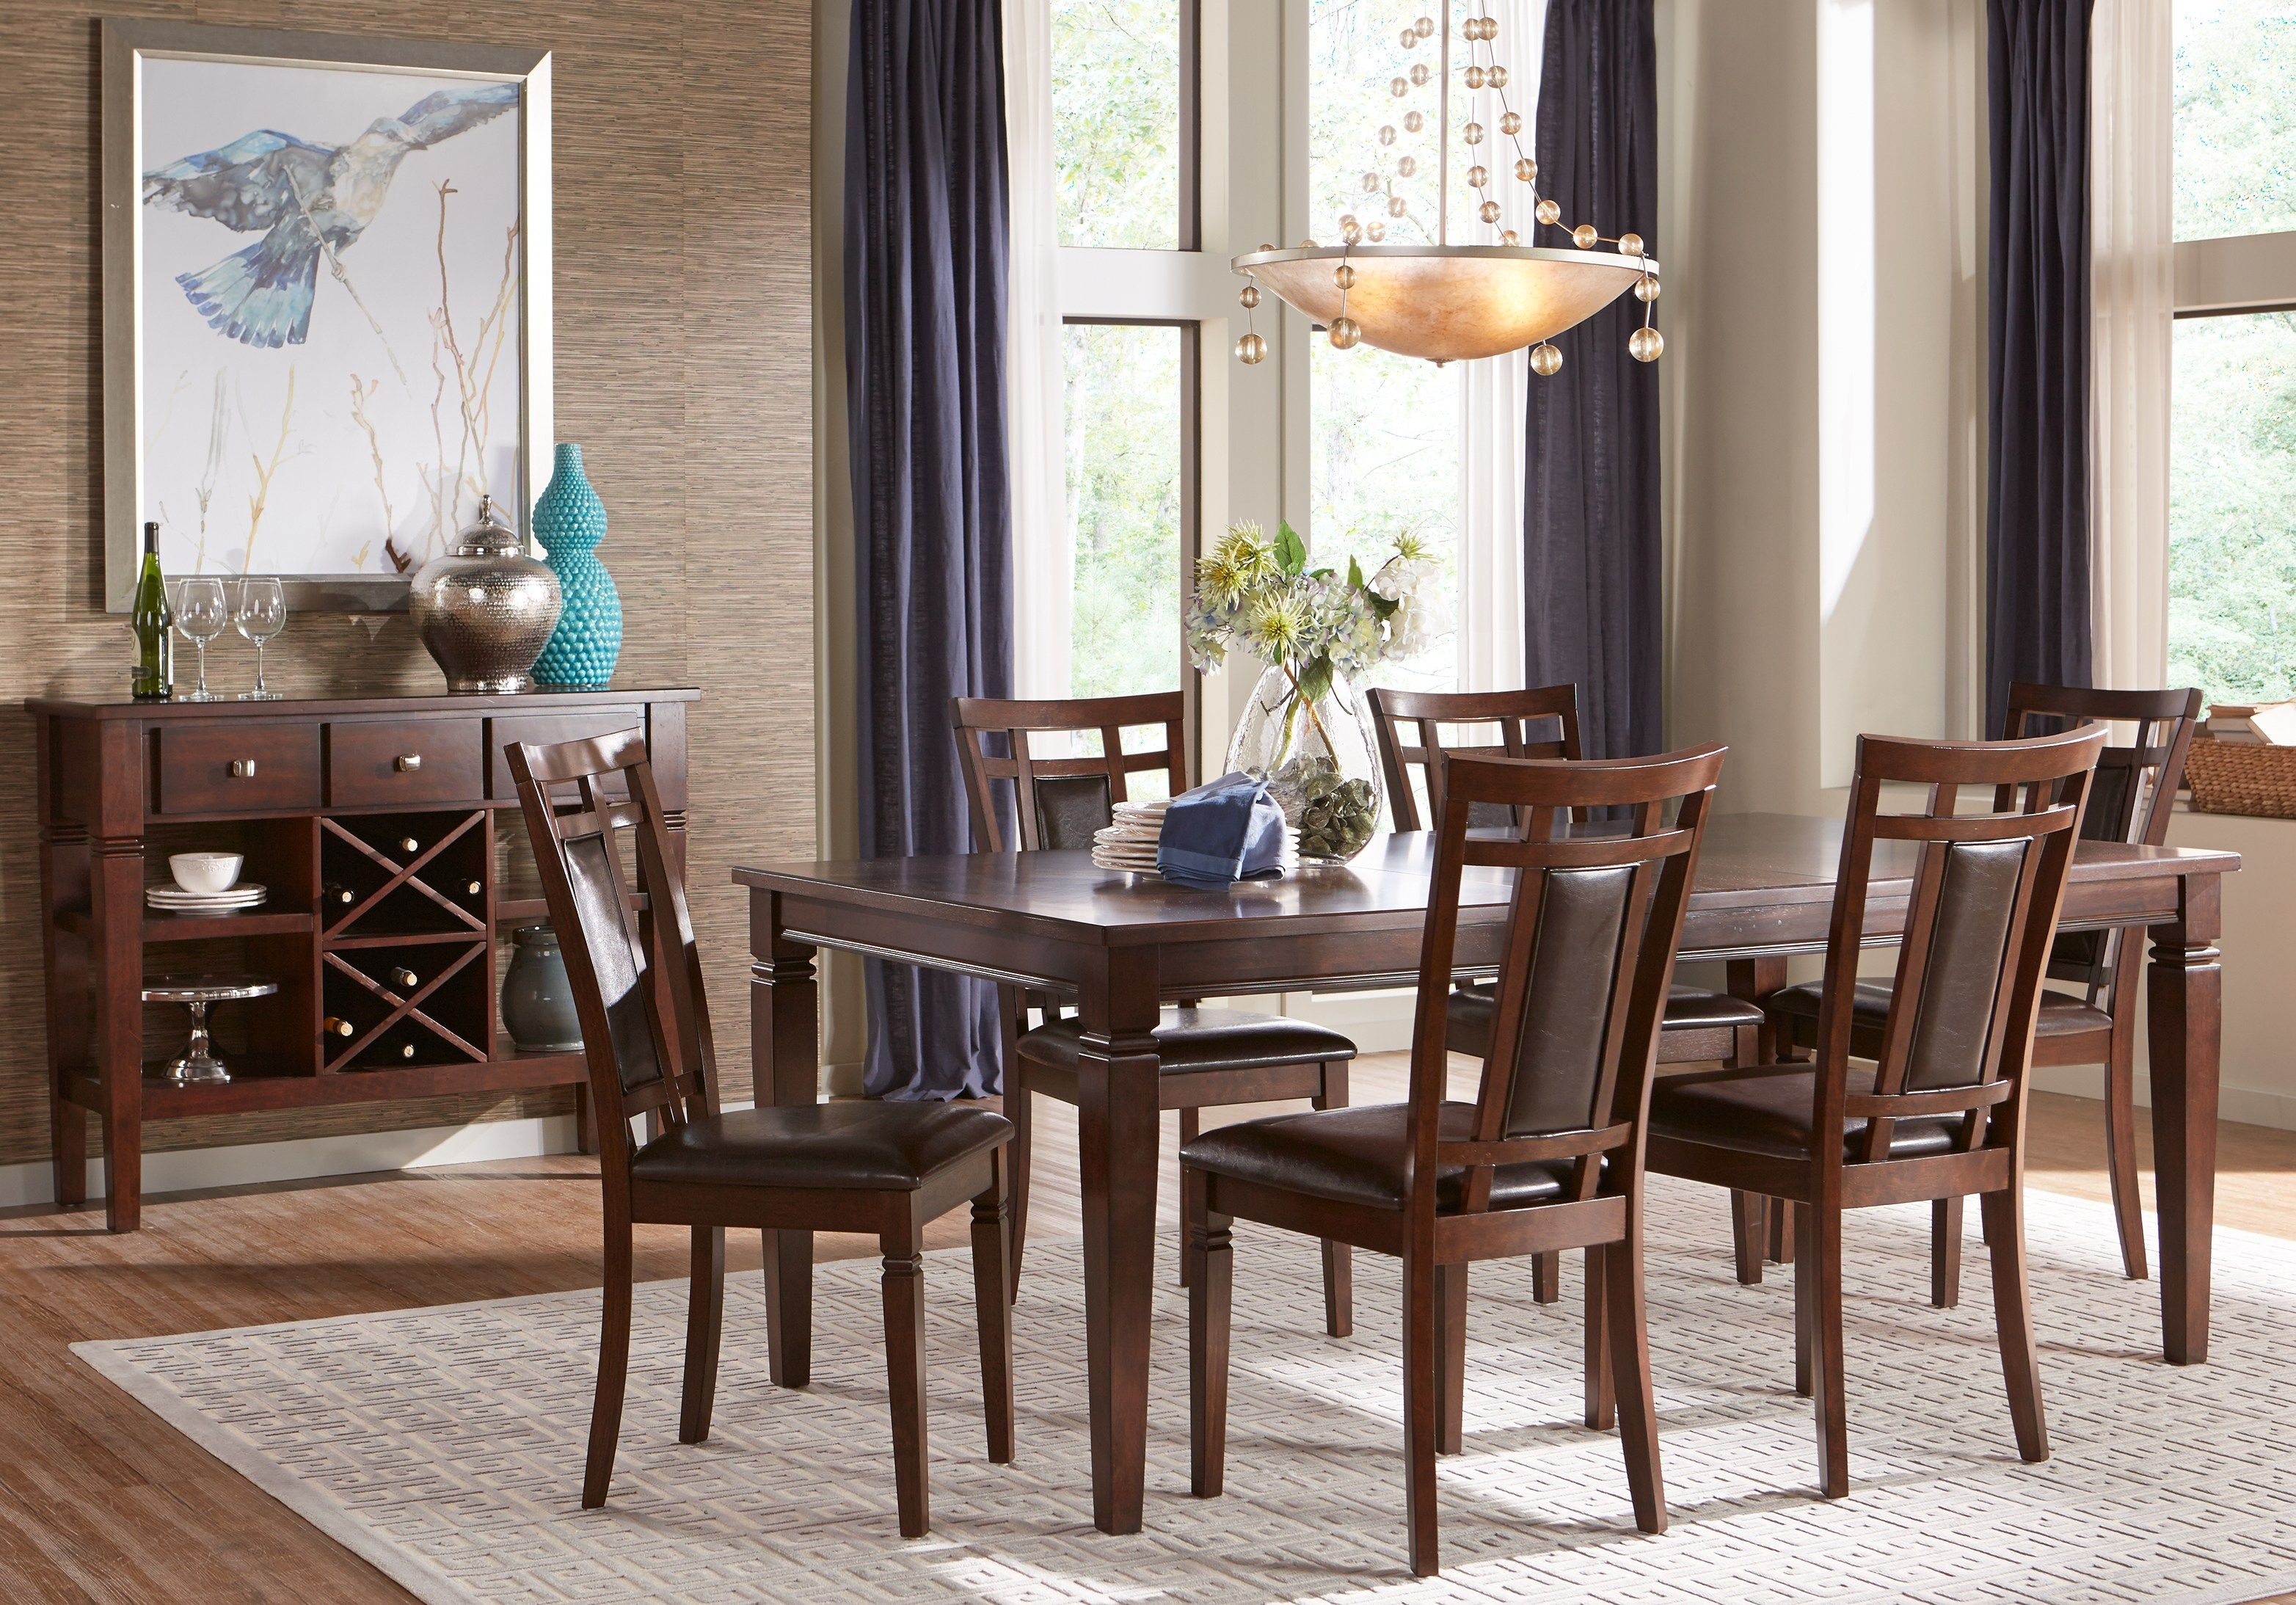 Riverdale Cherry 5 Pc Rectangle Dining Room Dining Room Sets Formal Dining Room Sets Rectangle Dining Room Set